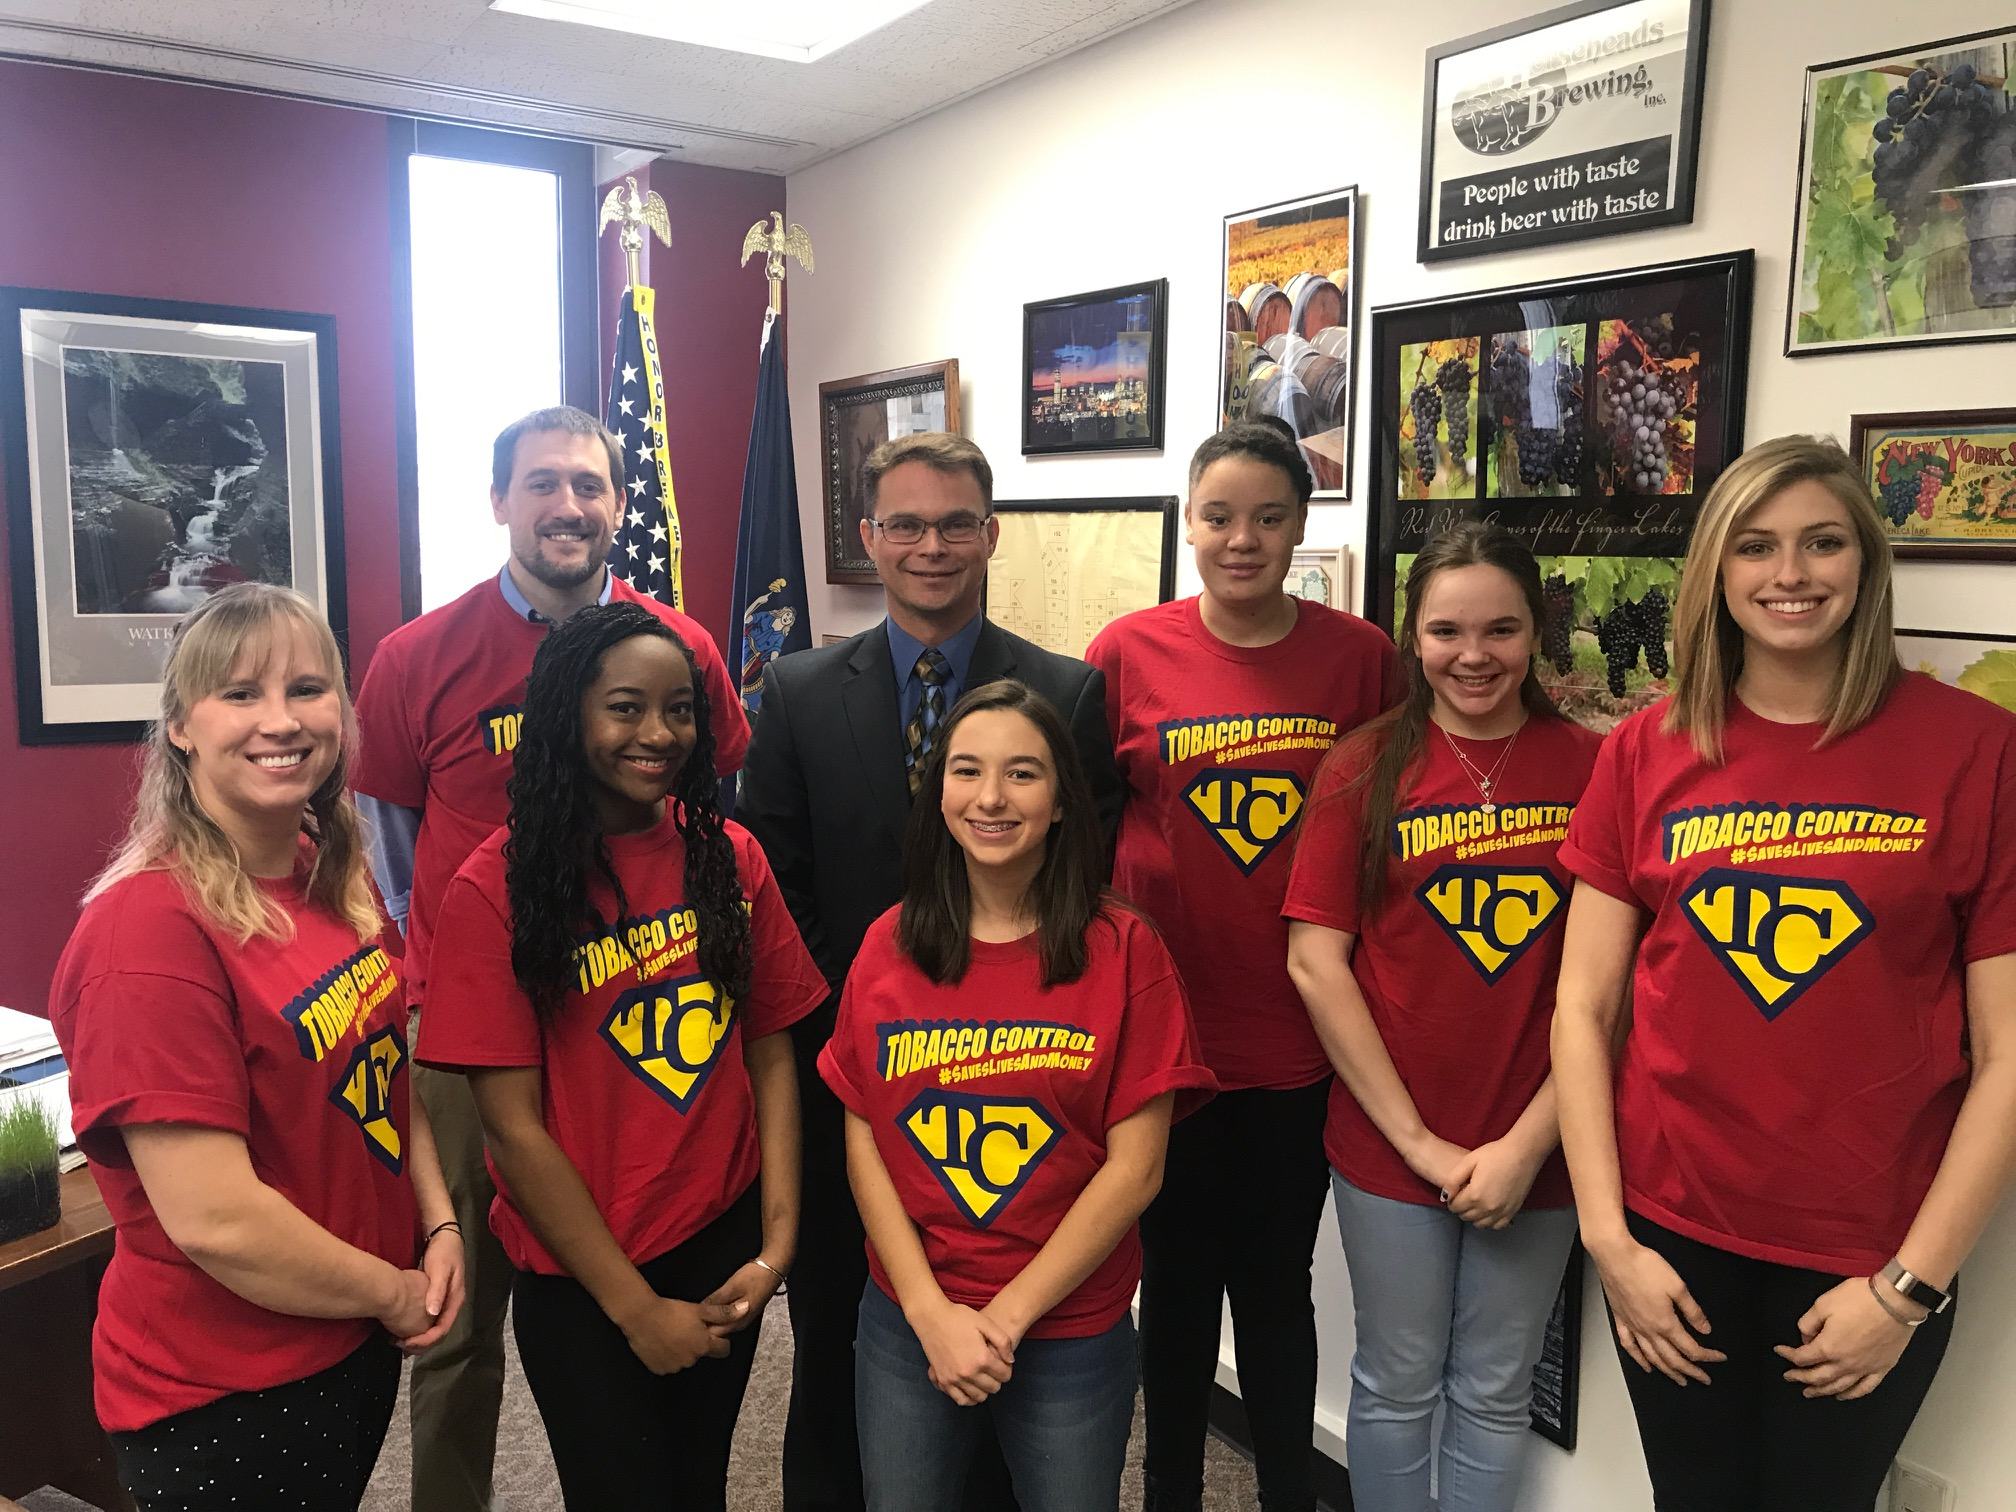 Chemung RC - Assemblyman Chris Friend took a moment form his busy schedule to meet with RC youth from Chemung County